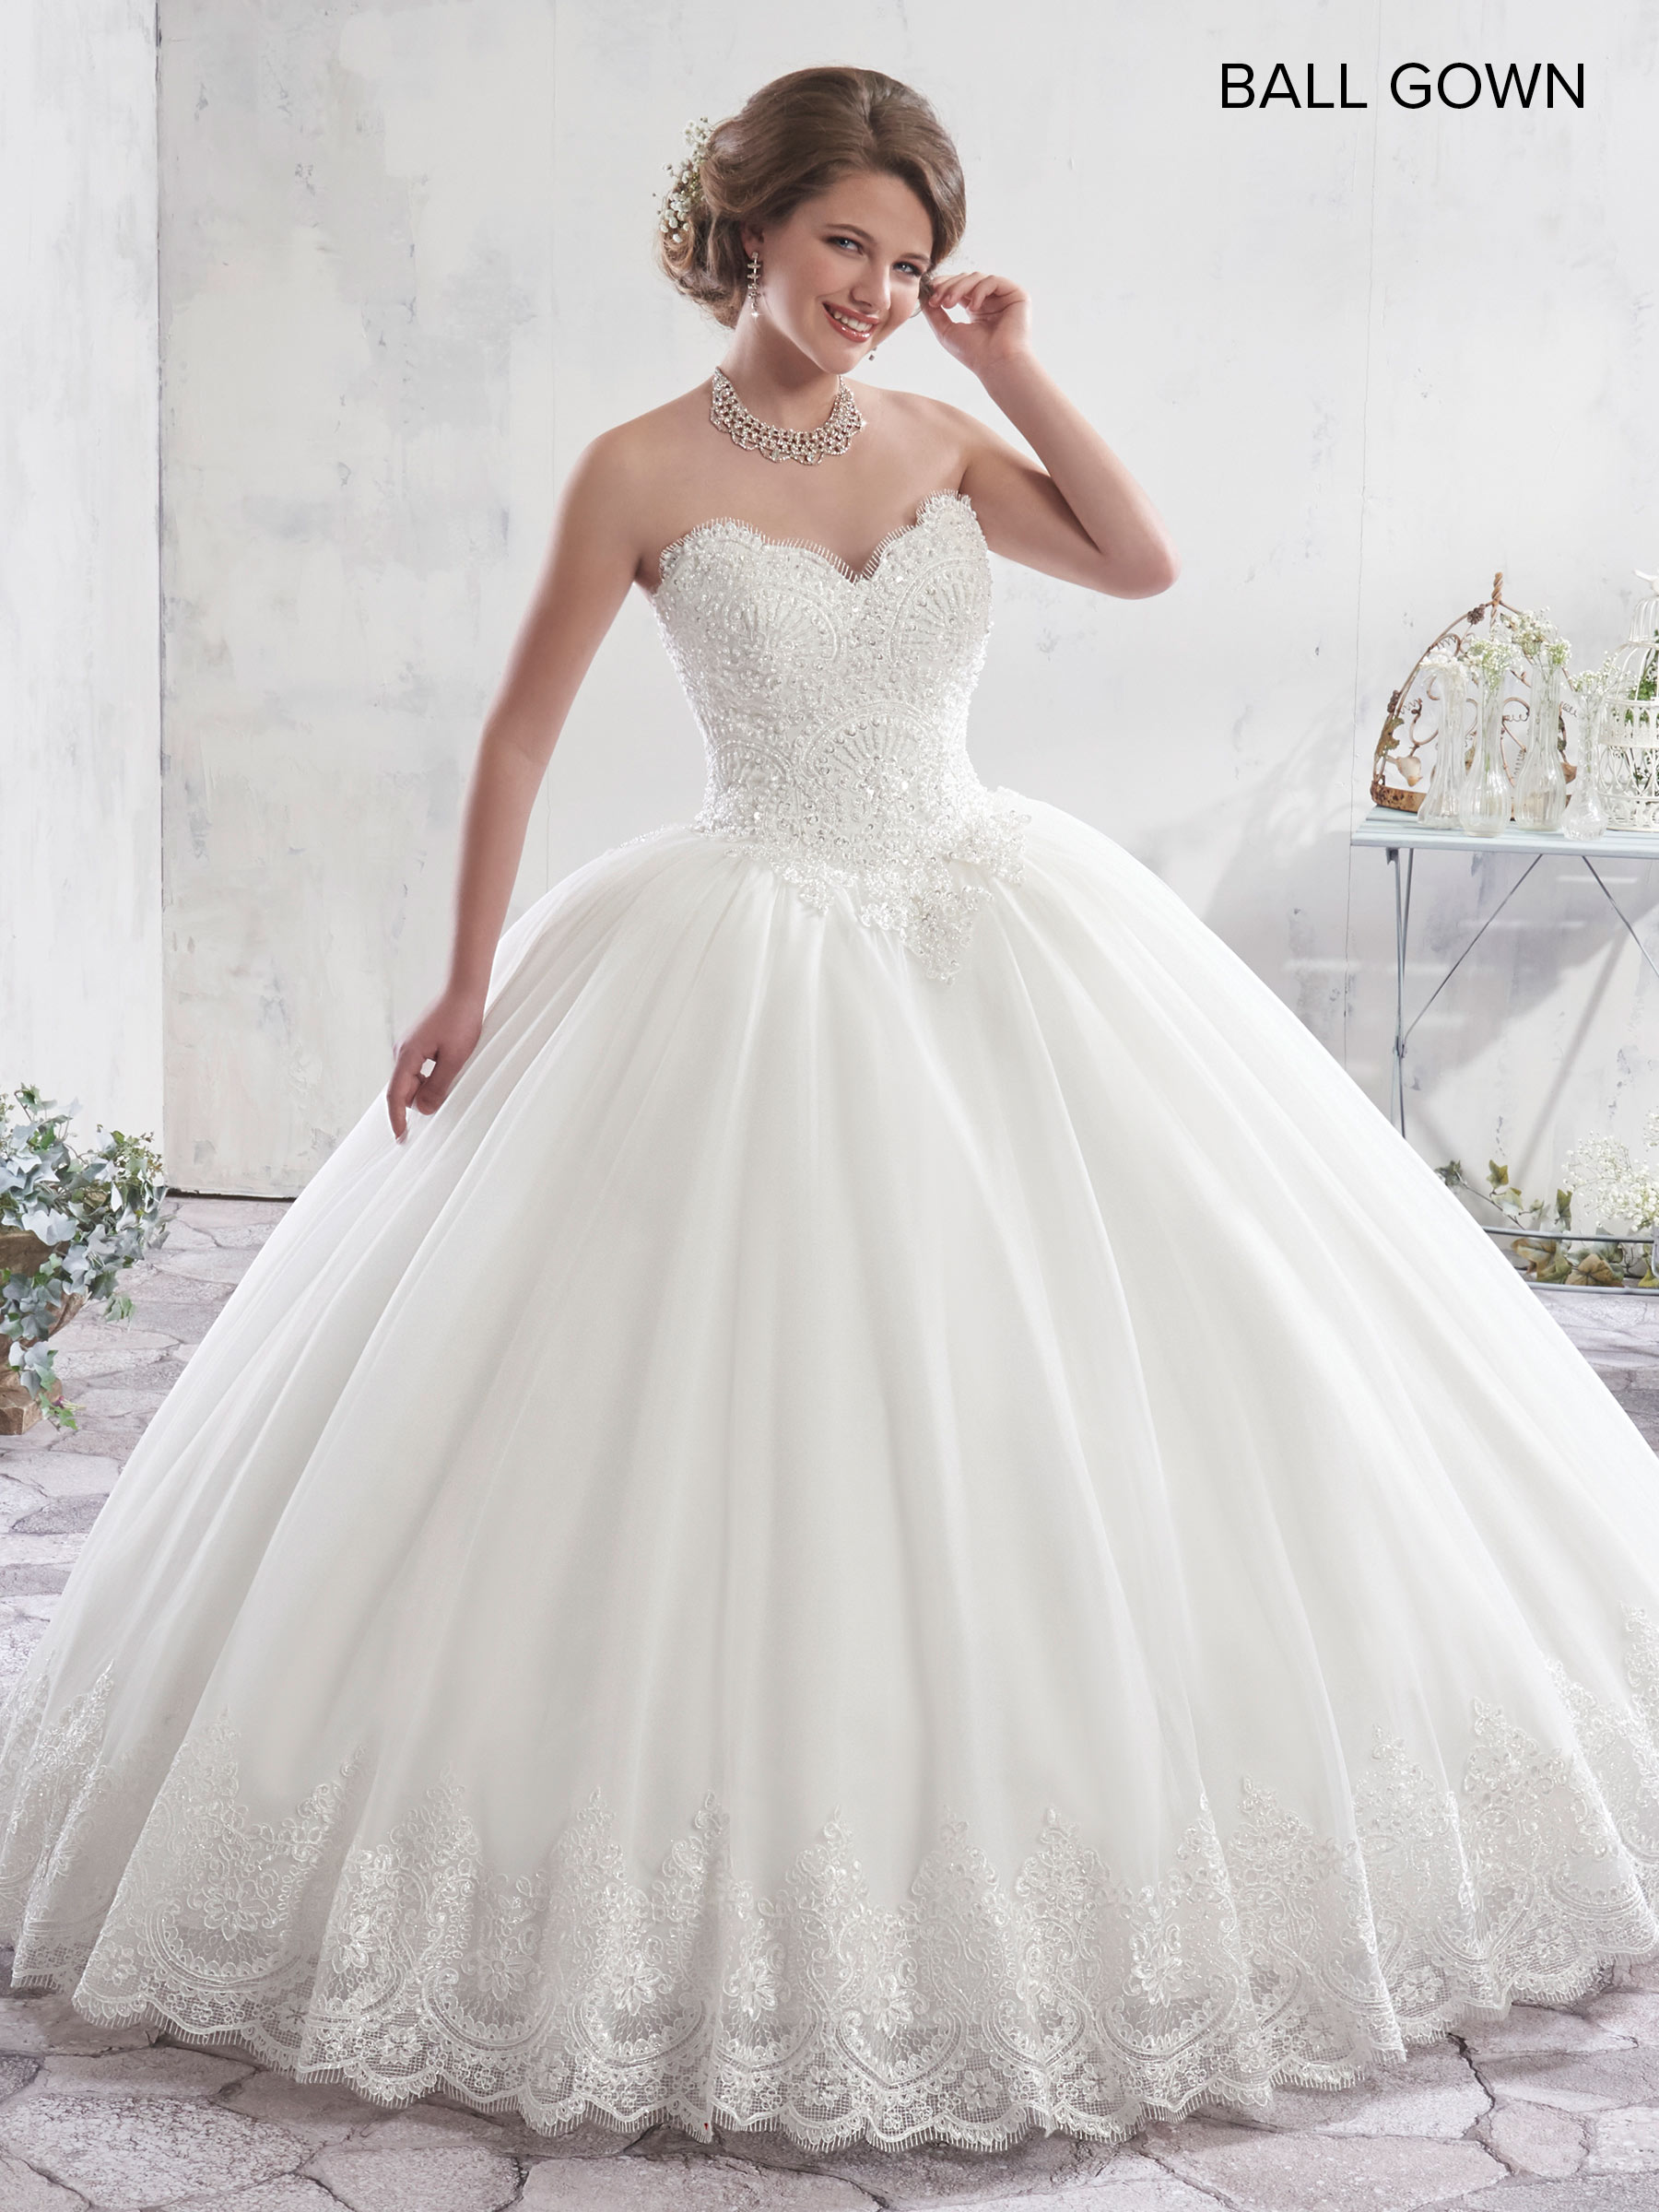 Bridal Ball Gowns | Style - MB6012 in Ivory or White Color